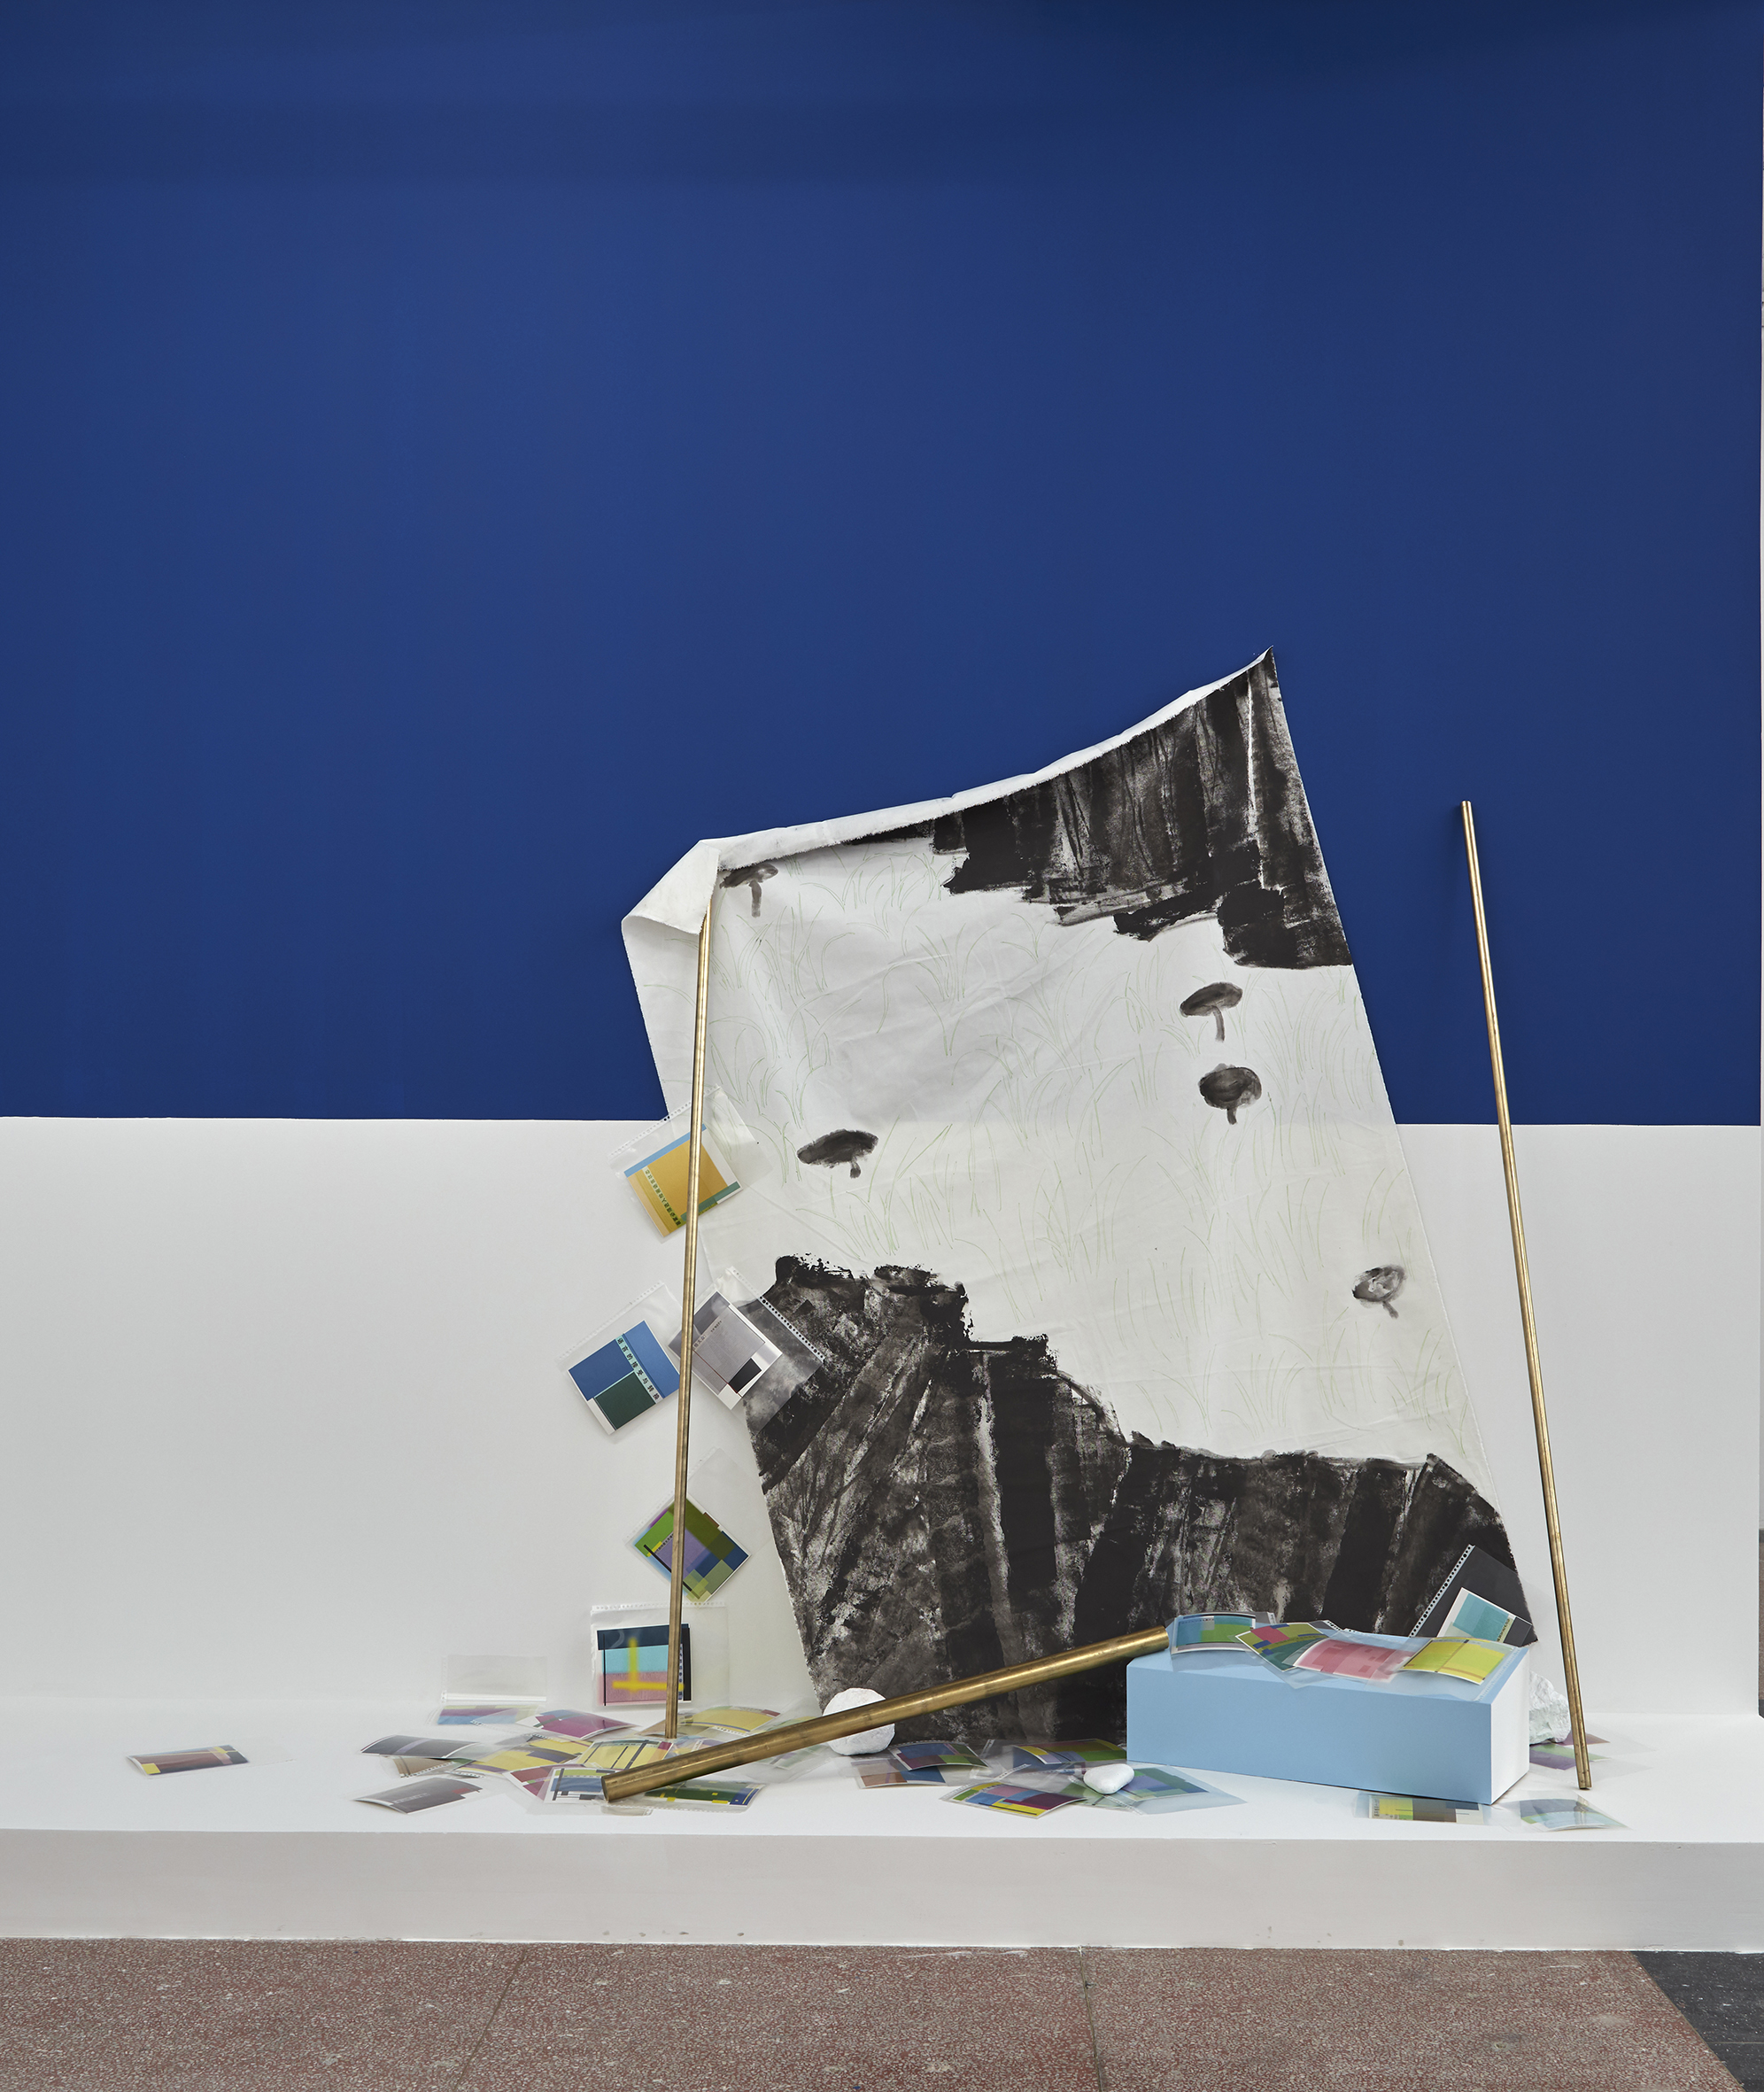 Liu Ding, 1988 Language as Issue, oil painting on the canvas, brass sticks, documents, dimension variable, 2016